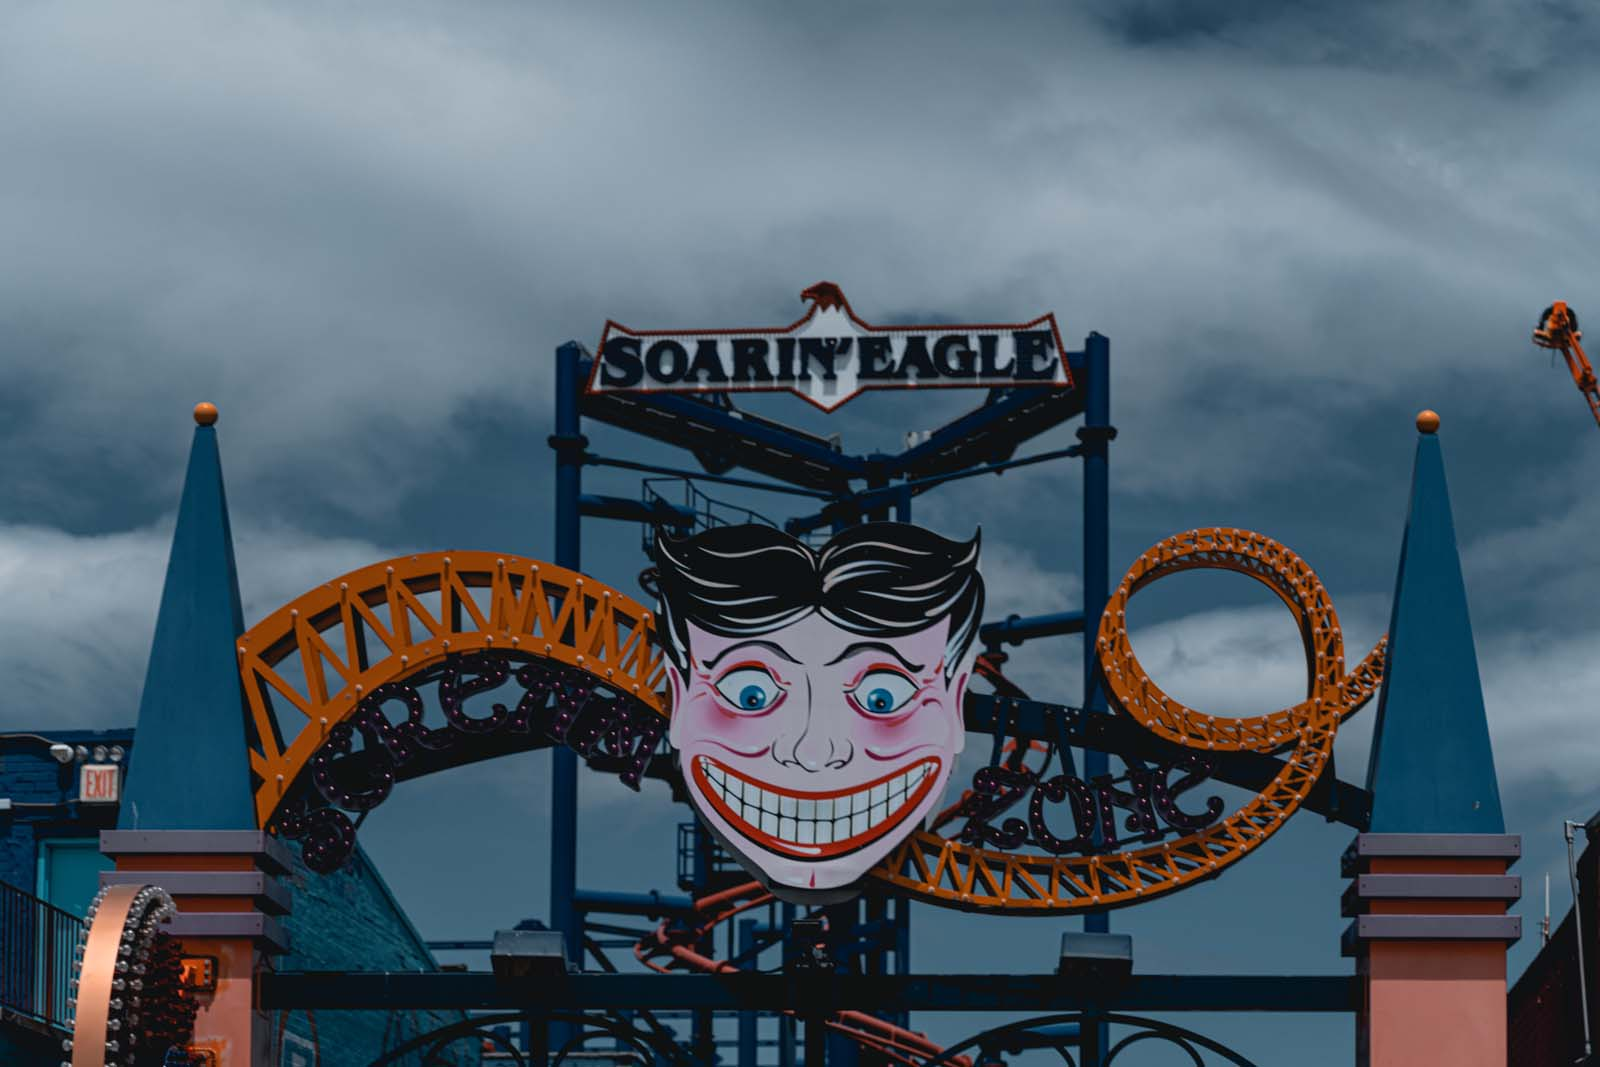 Scream zone sign and rides at Coney Island